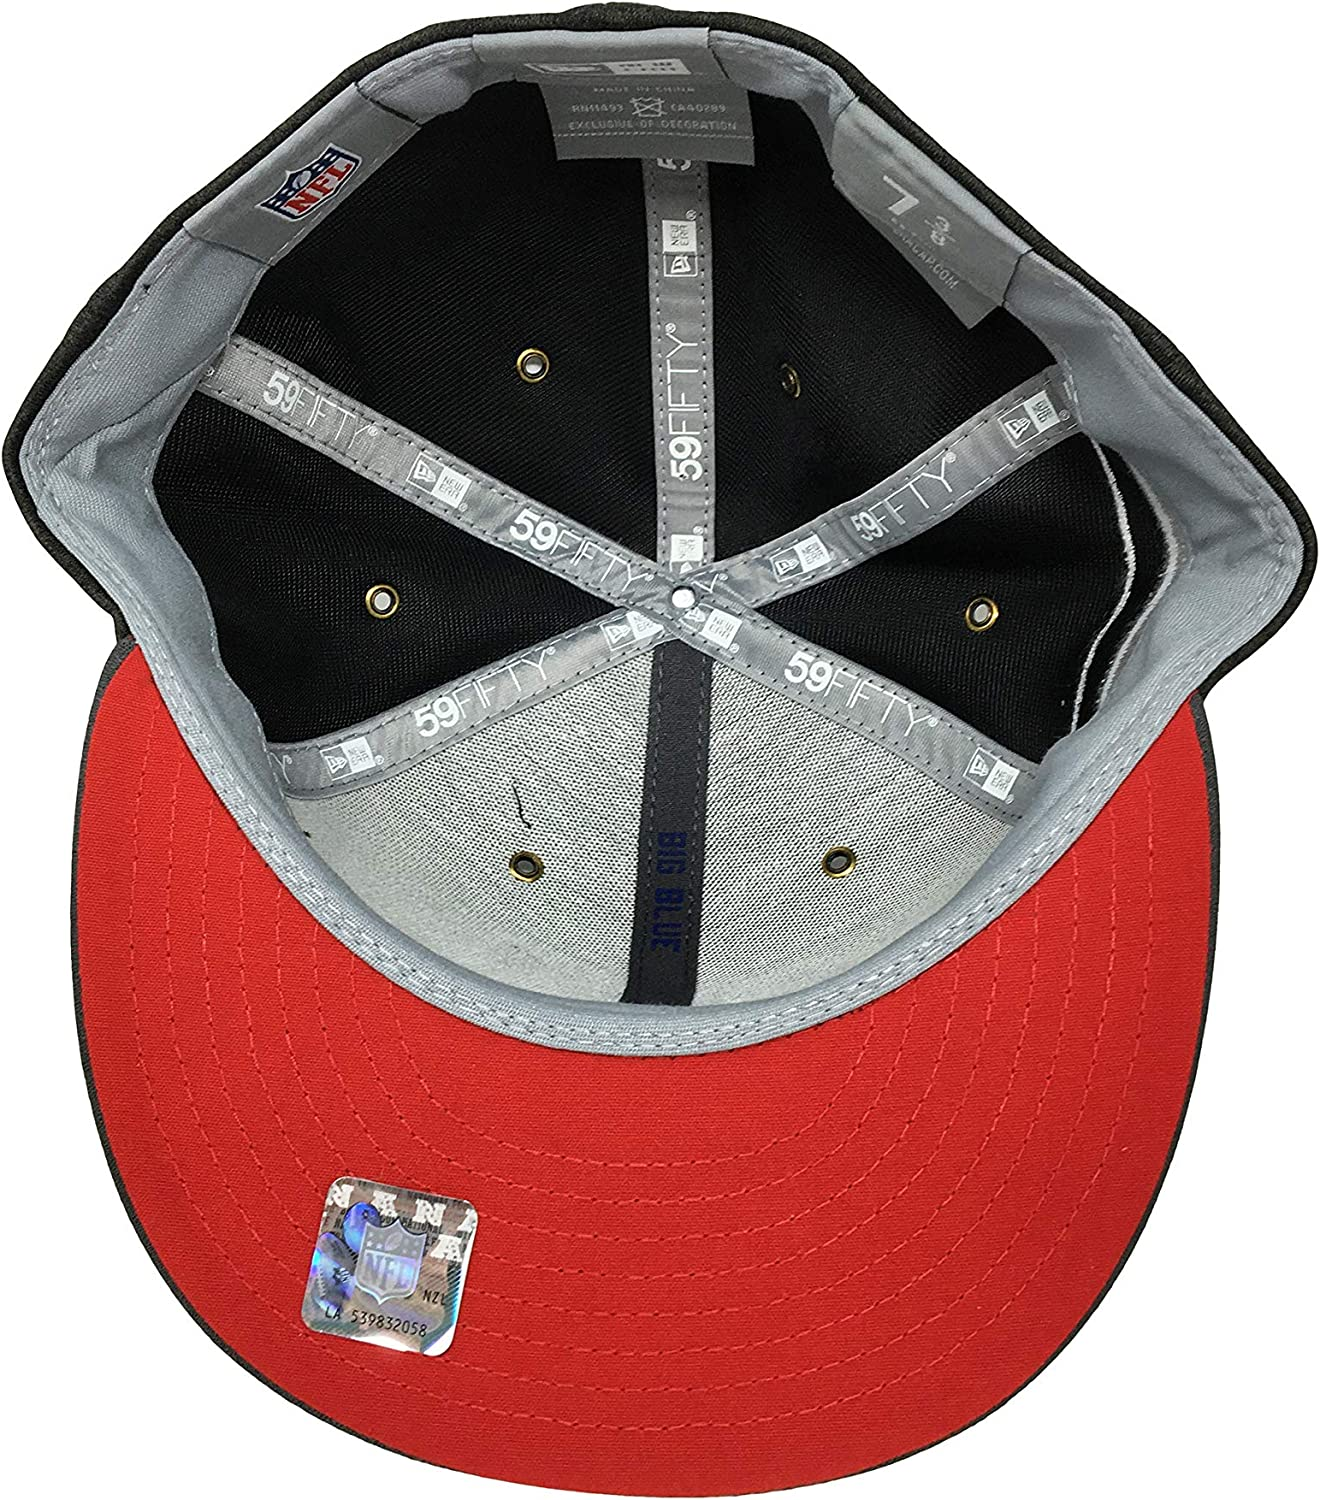 New Era New York Giants 59Fifty Fitted Hat Official NFL Flat Bill Cap 5950